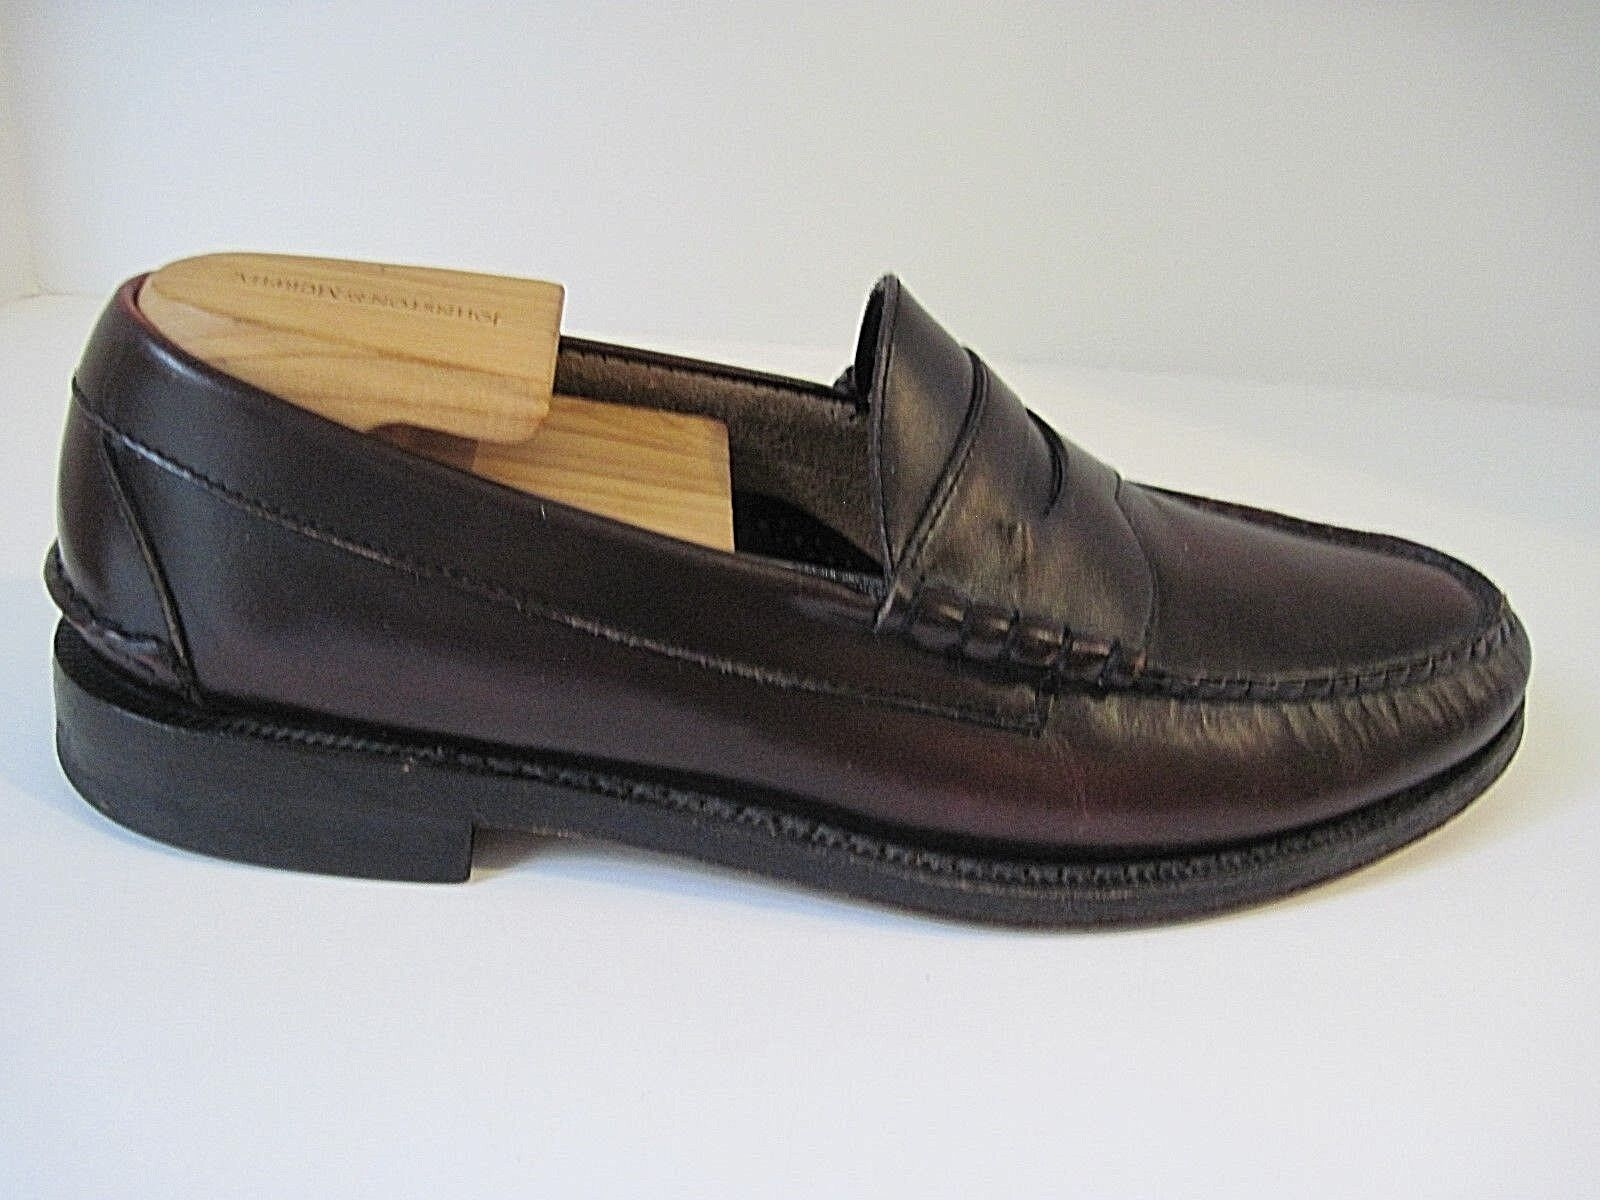 Johnston & Murphy Aristocraft cordovan leather penny loafers size 9 1/2 C